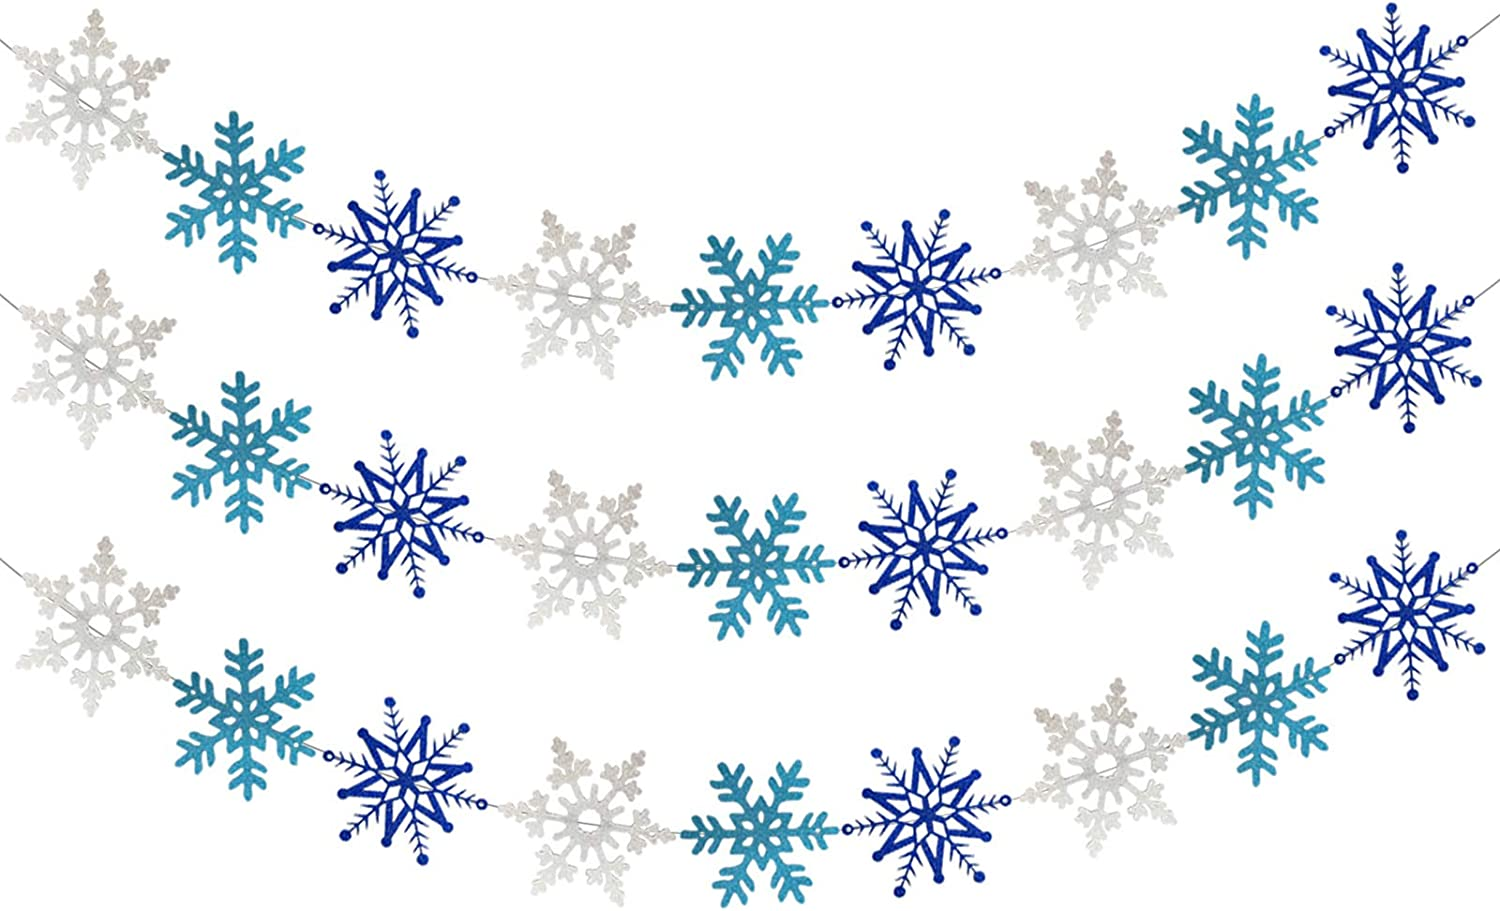 3PCS White Blue Glittery Snowflake Banner - Christmas Holiday Themed Party Decorations, Winter Wonderland Mantle Home Decor, Santa Festive Party Decor, Kids Birthday Baby Shower Party Decorations